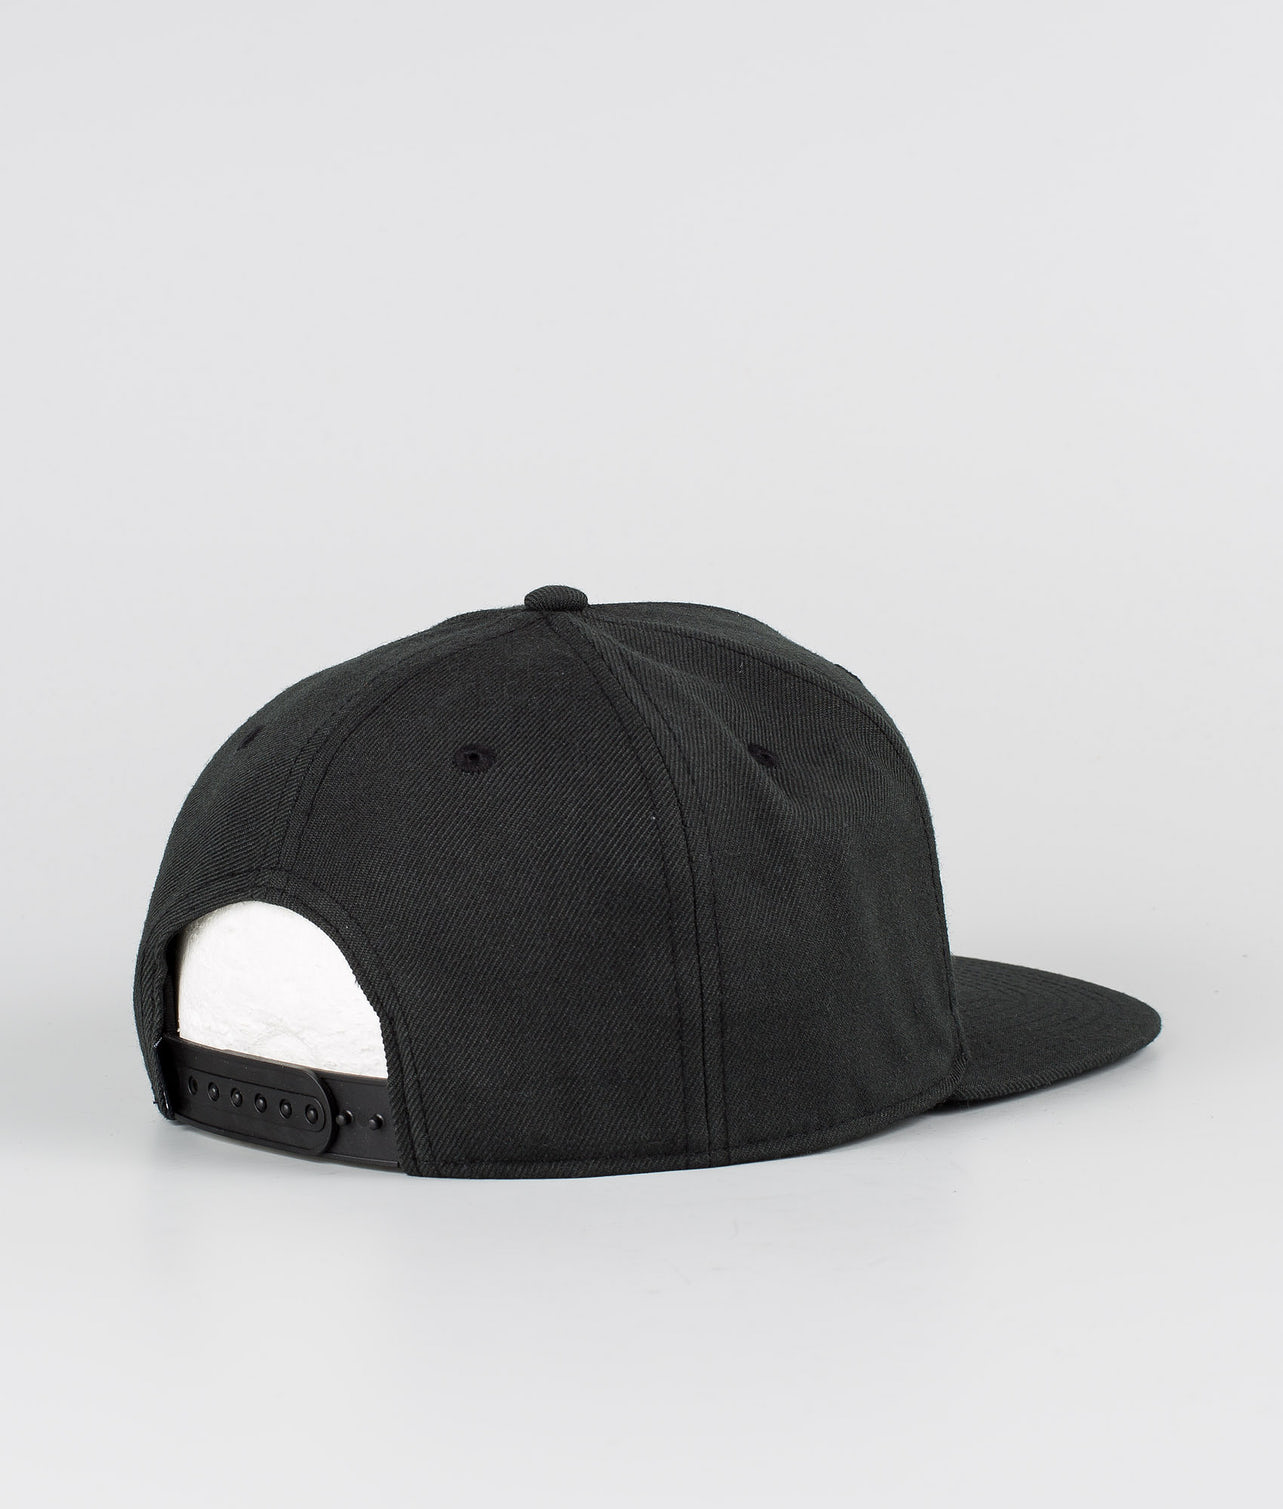 Buy Paradise Cap from Dope at Ridestore.com - Always free shipping, free returns and 30 days money back guarantee